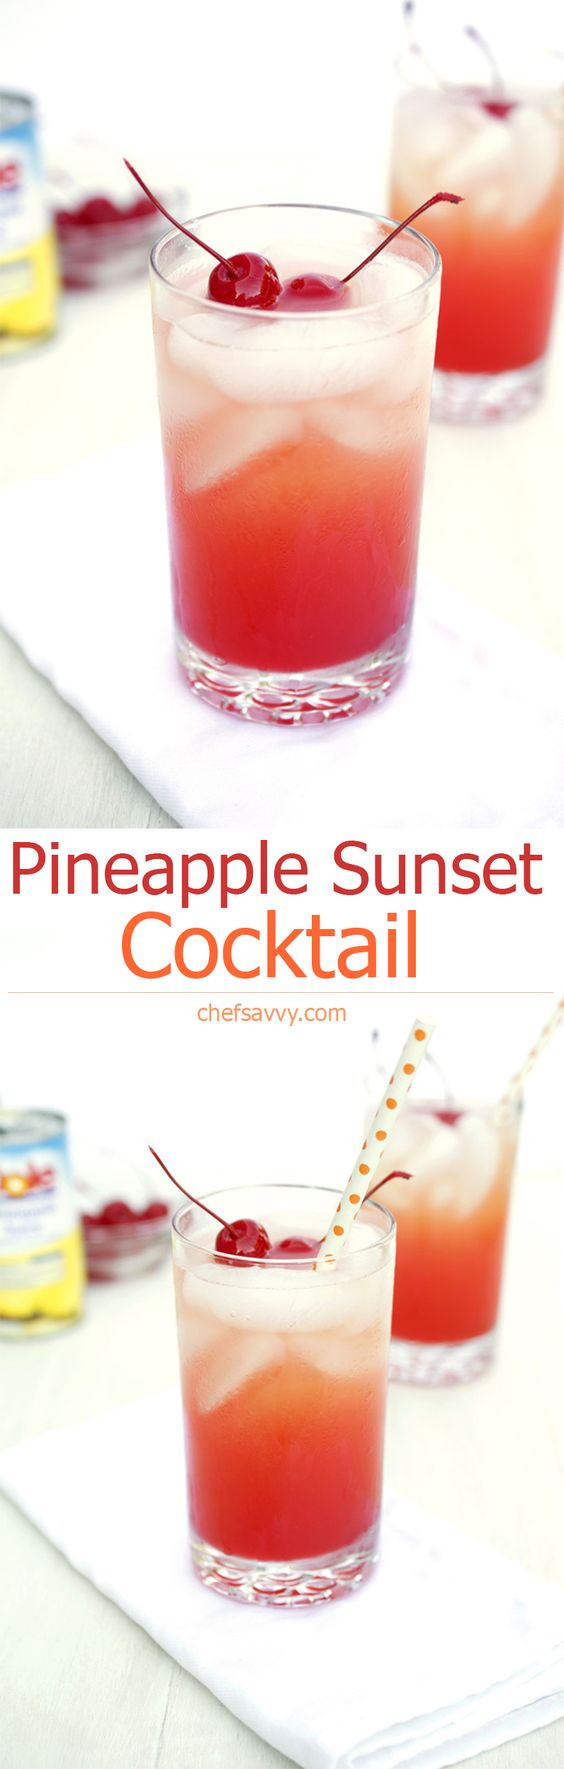 Mixed Drinks With Vodka And Pineapple Juice  Pineapple Sunset Recipe